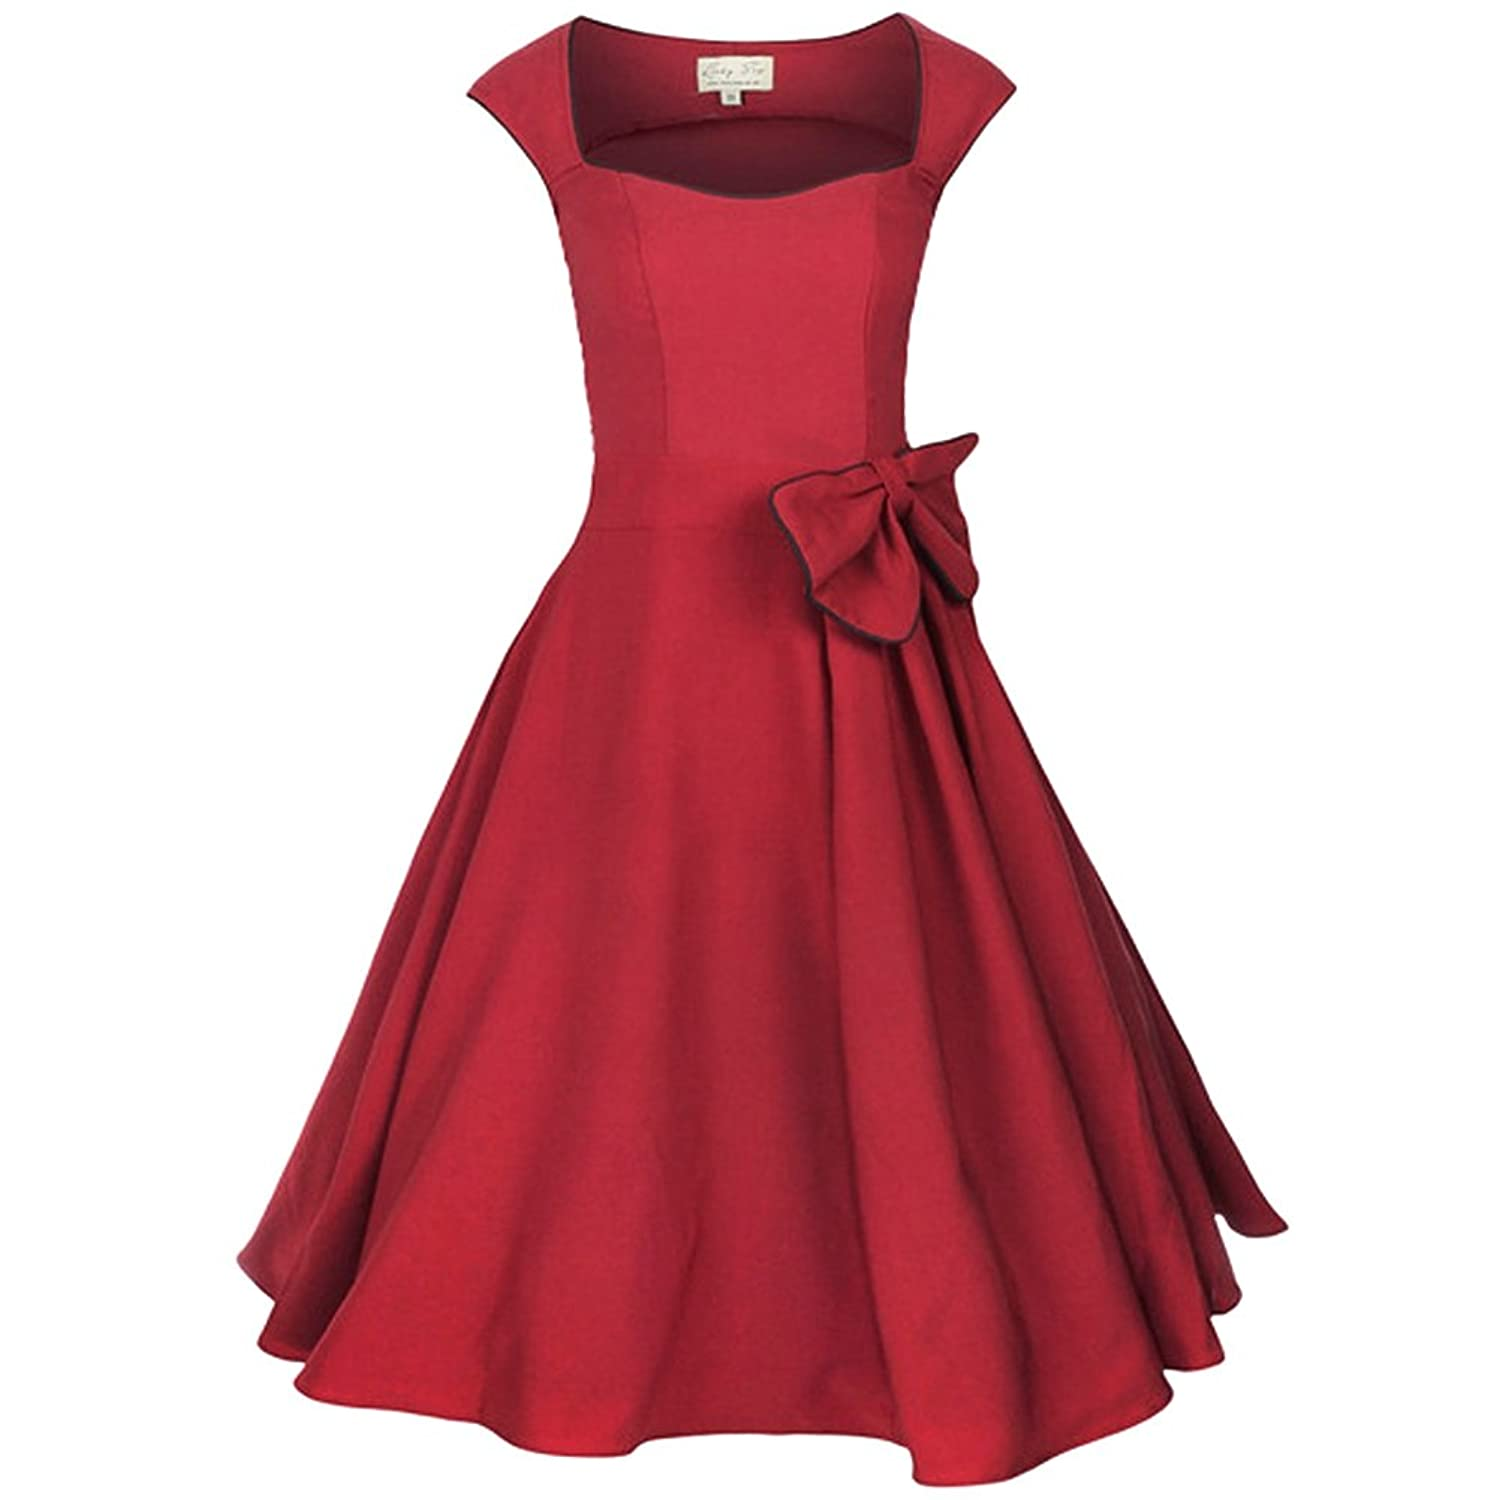 Zxzy Wommen 50s 60s Rockabilly Dress Audrey Hepburn Vintage Retro Swing Square Collar Dresses